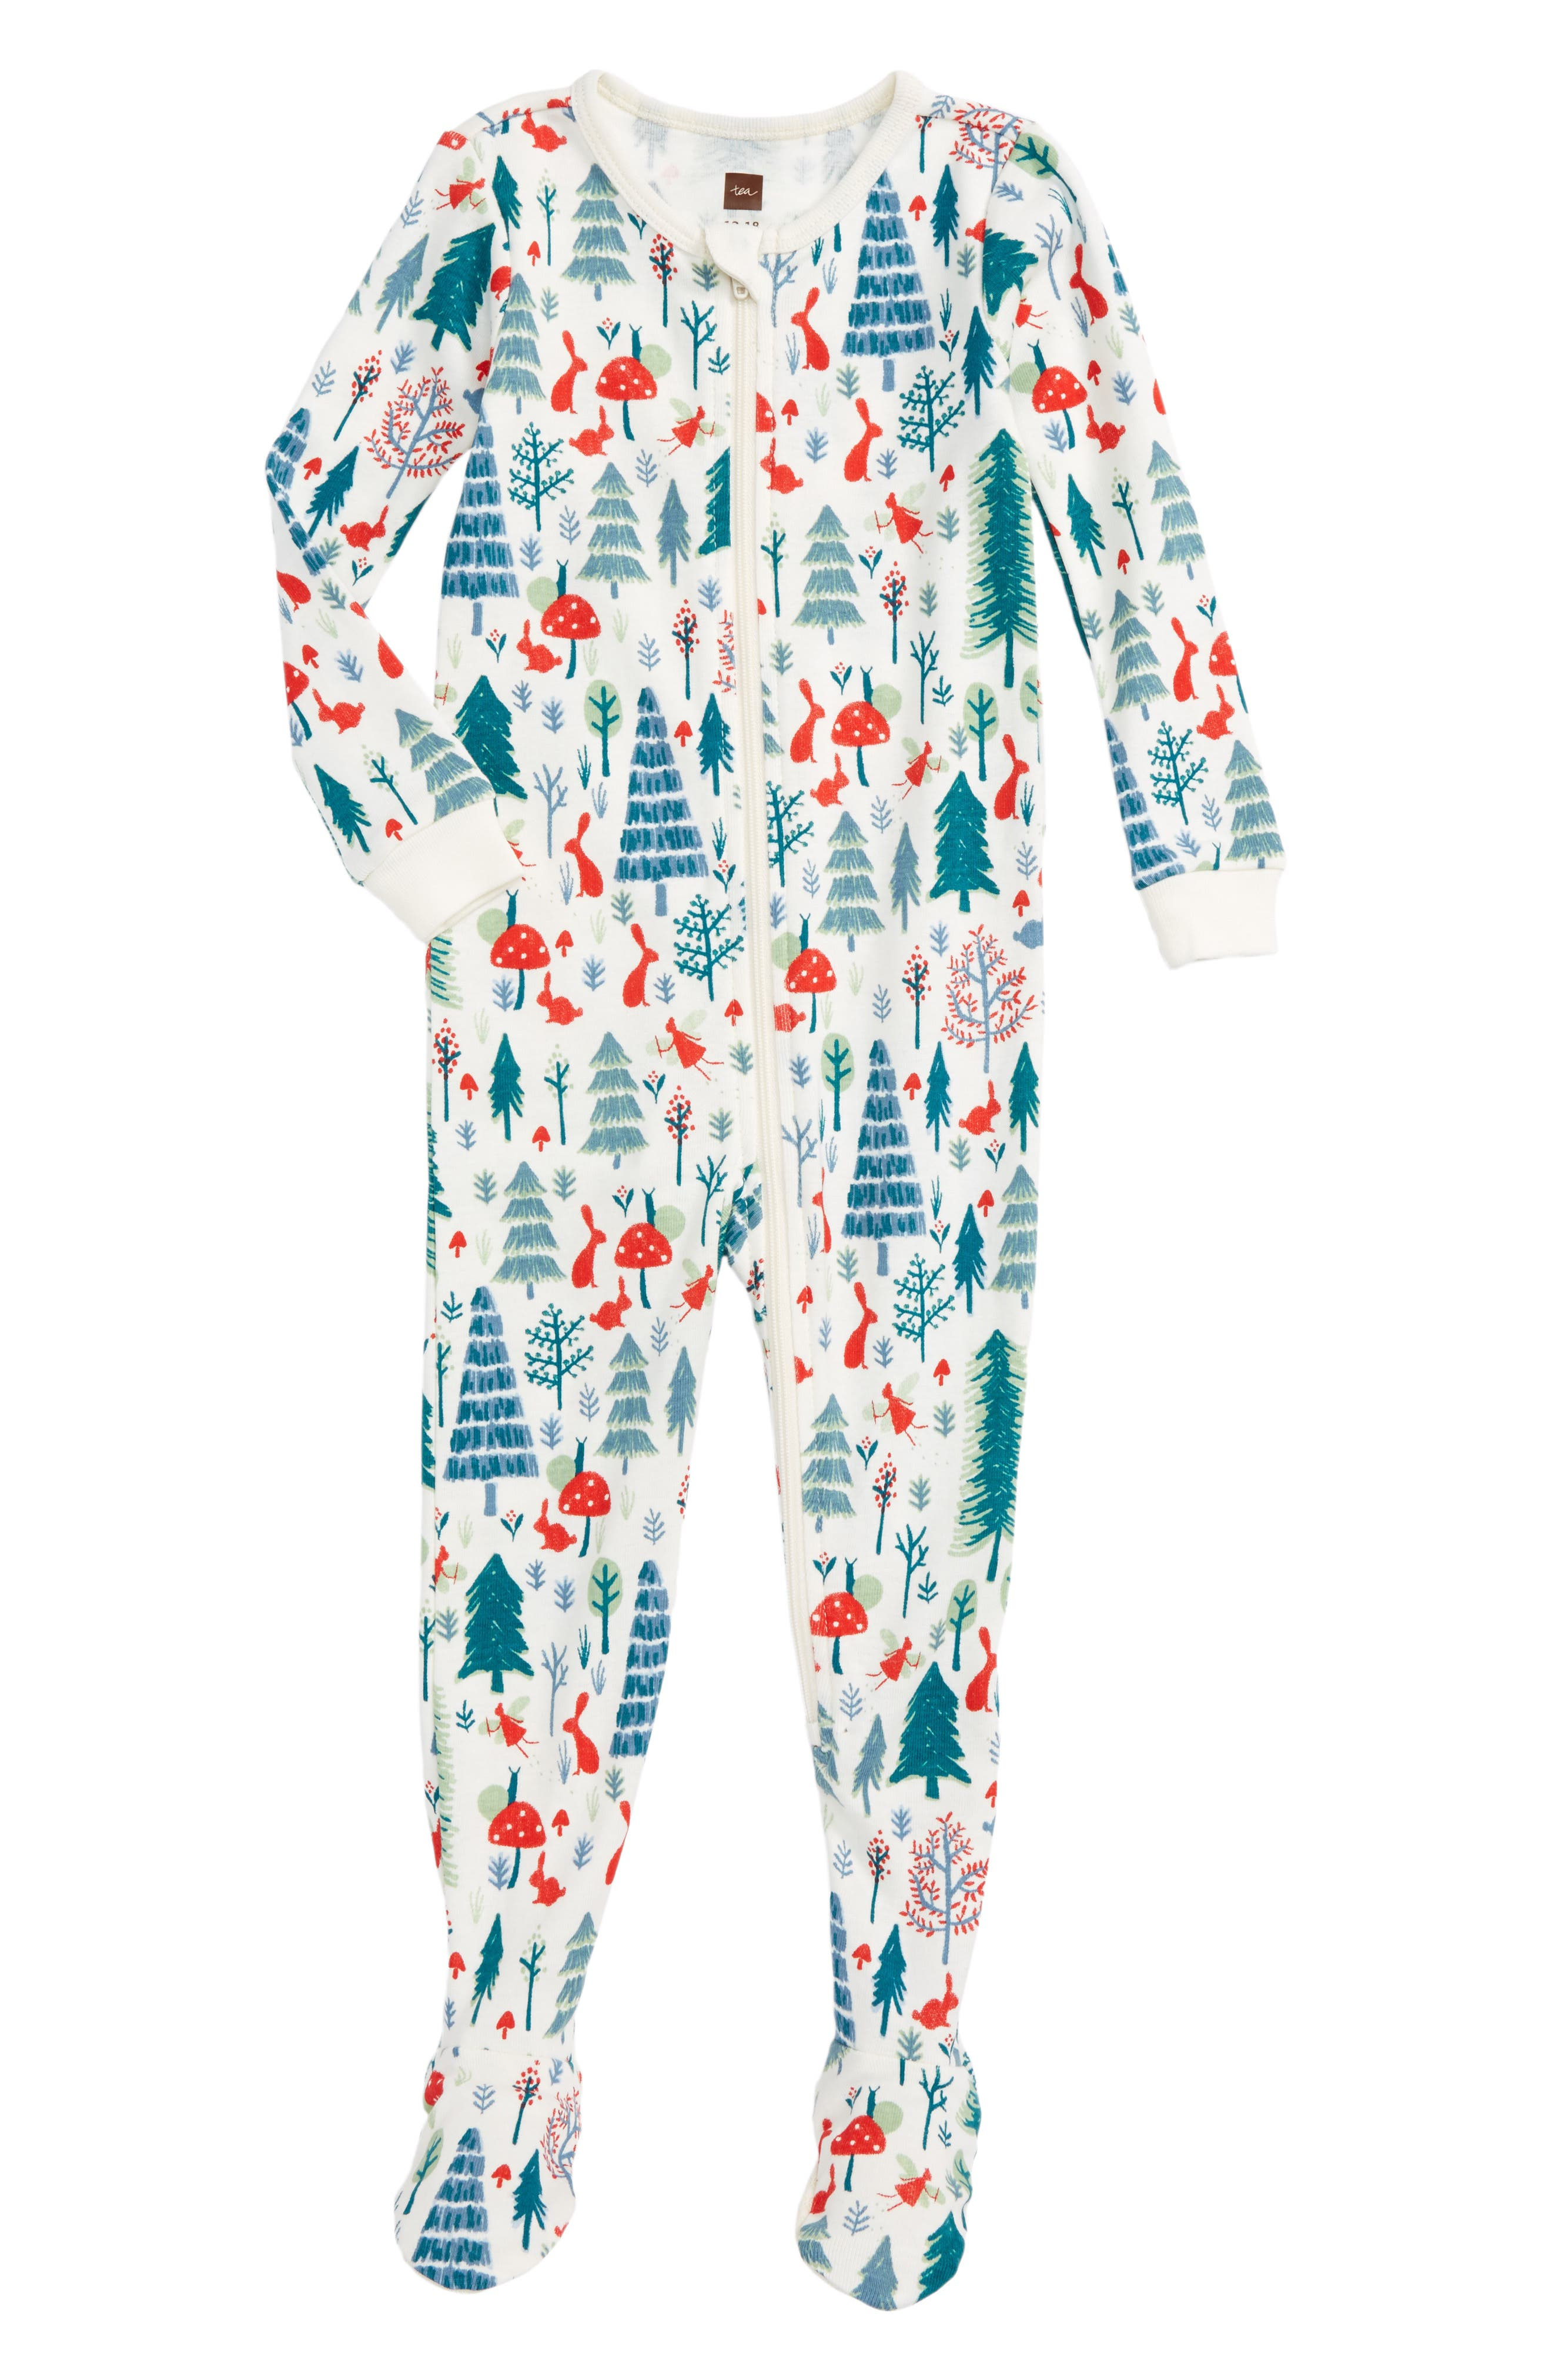 Maeve Fitted One-Piece Pajamas,                         Main,                         color, Chalk